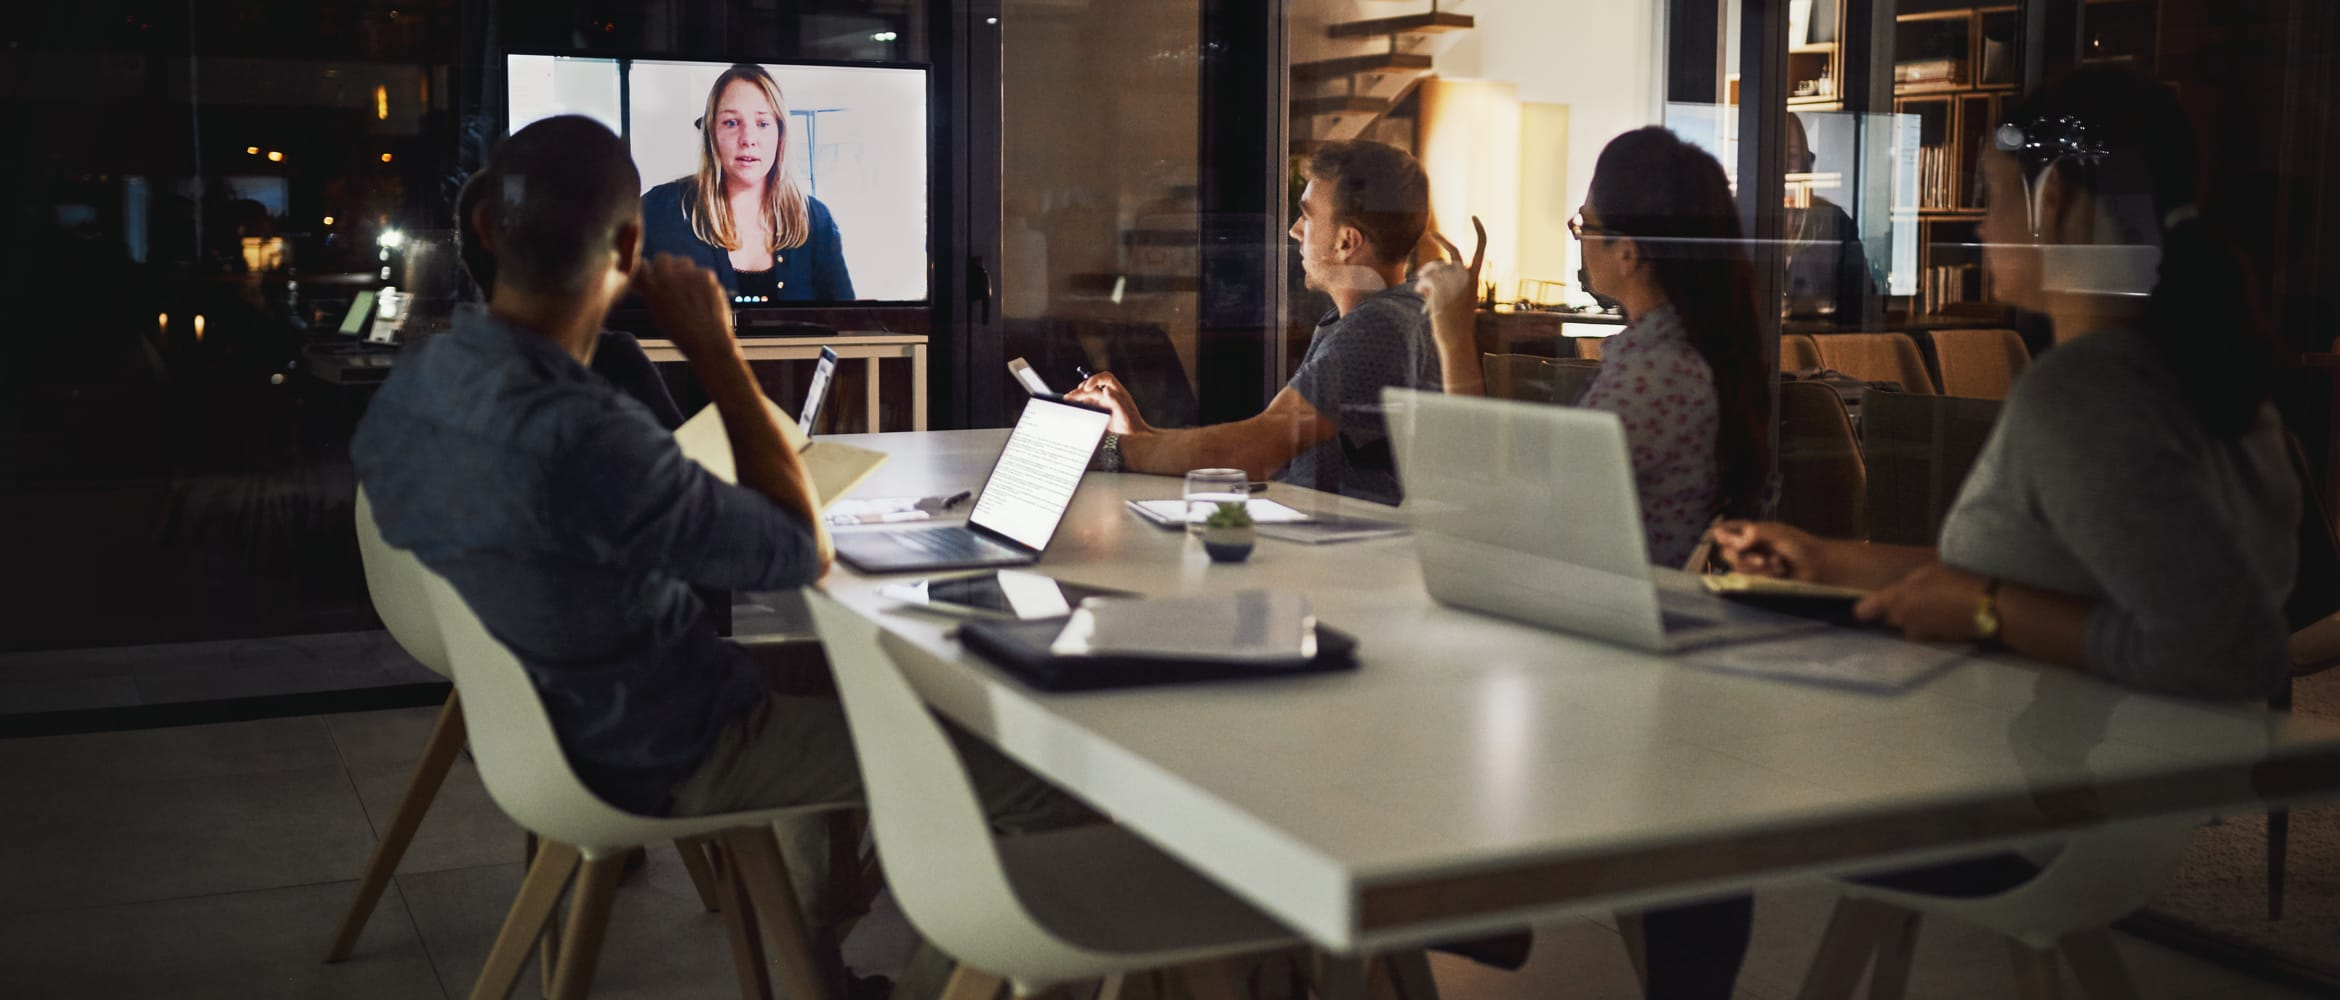 Small medium business employees improve collaboration by using web conferencing to speak to a colleague on a screen